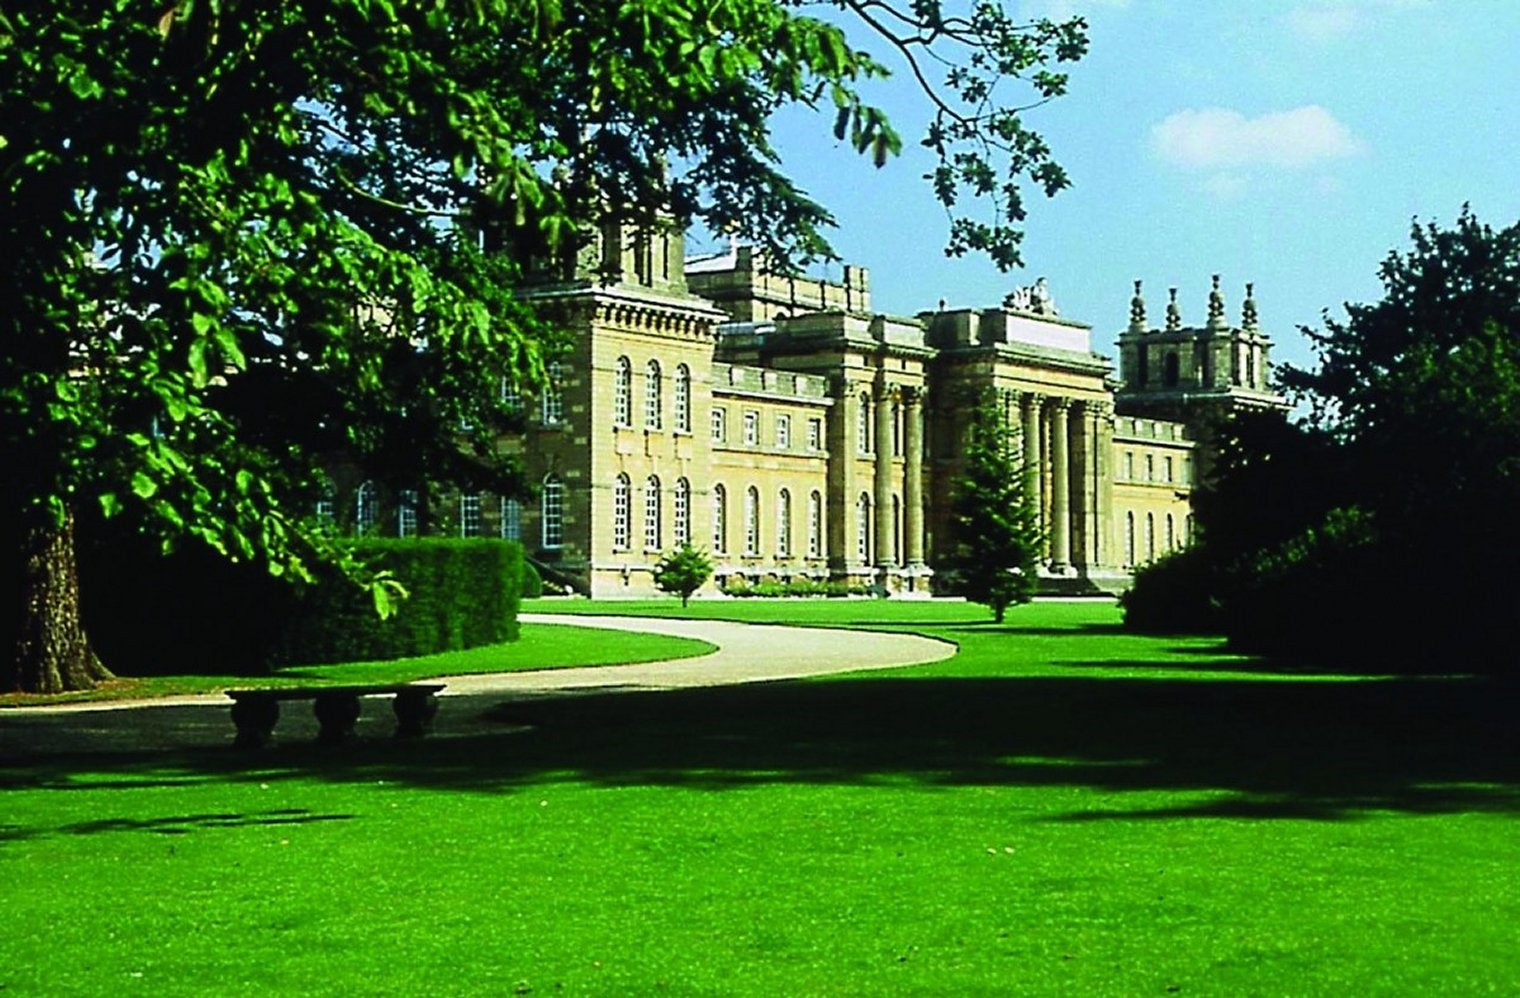 Picture of Blenheim Palace